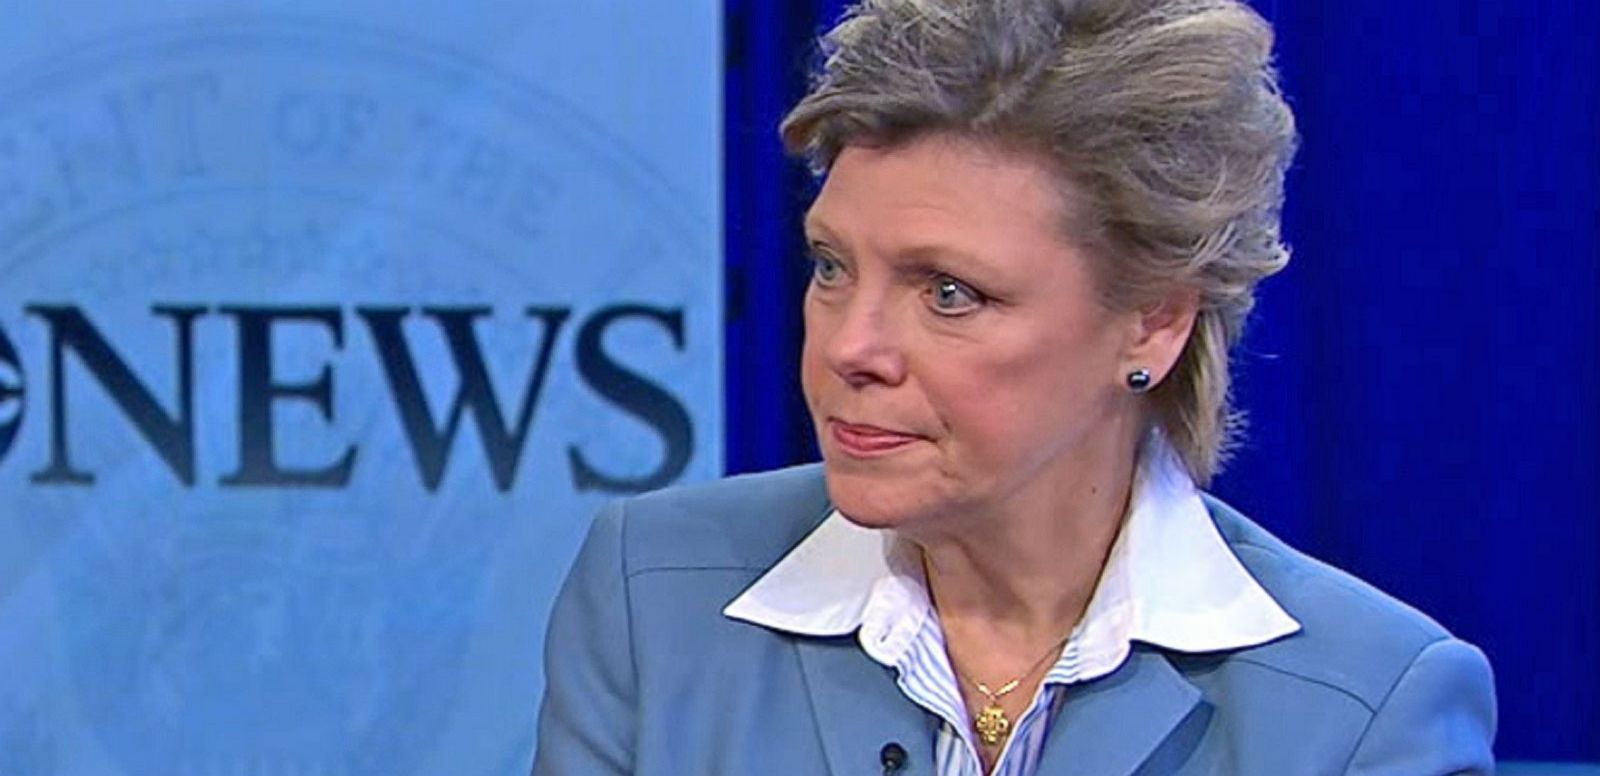 VIDEO: Cokie Roberts Says It's 'Fact' Bernie Sanders 'Could Be the Democratic Nominee'